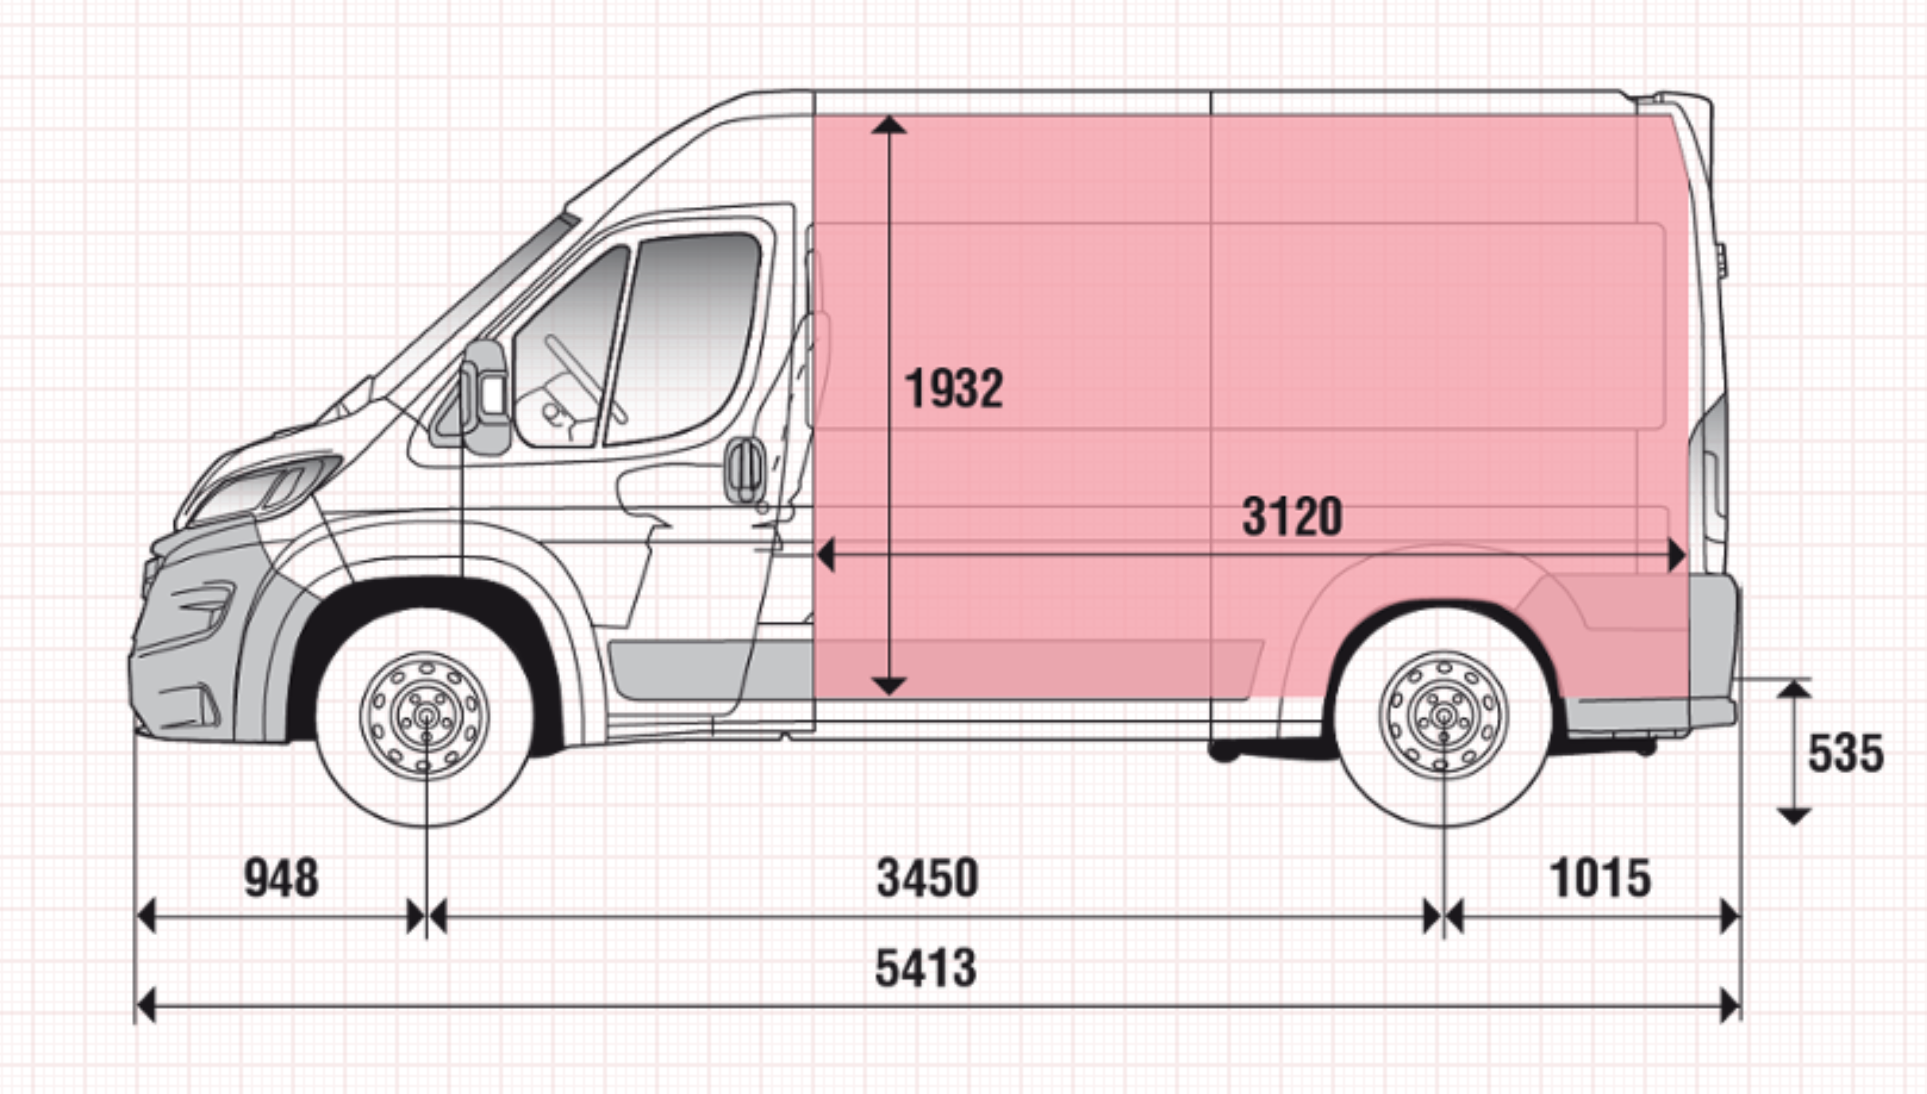 can anyone give me the envelope of a fiat ducato citroen jumper peugeot boxer with middle